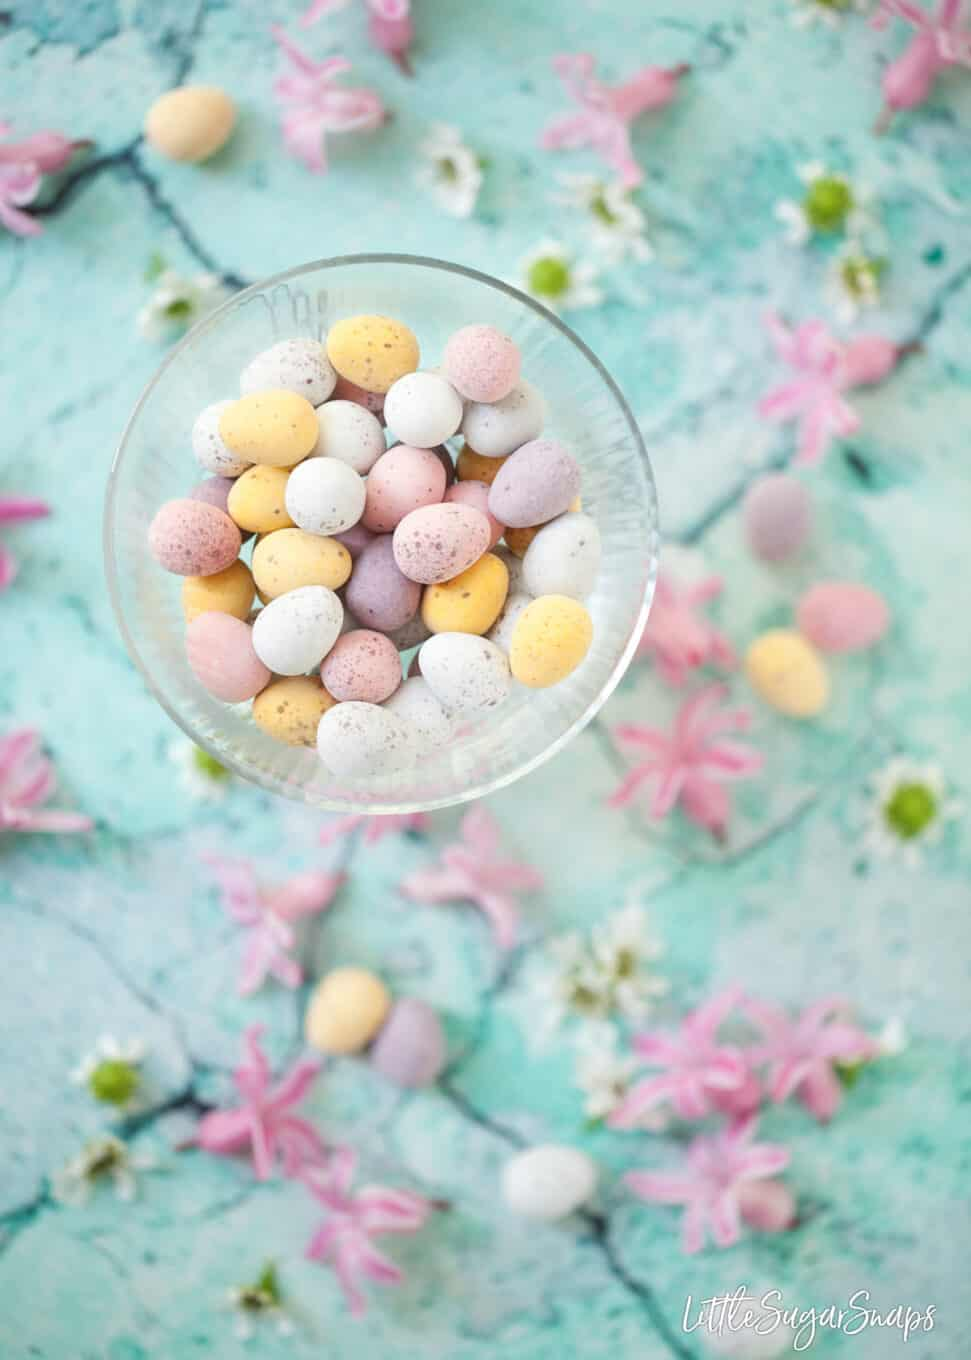 Chocolate mini eggs in a glass bowl against a blue background with spring flowers in shot.